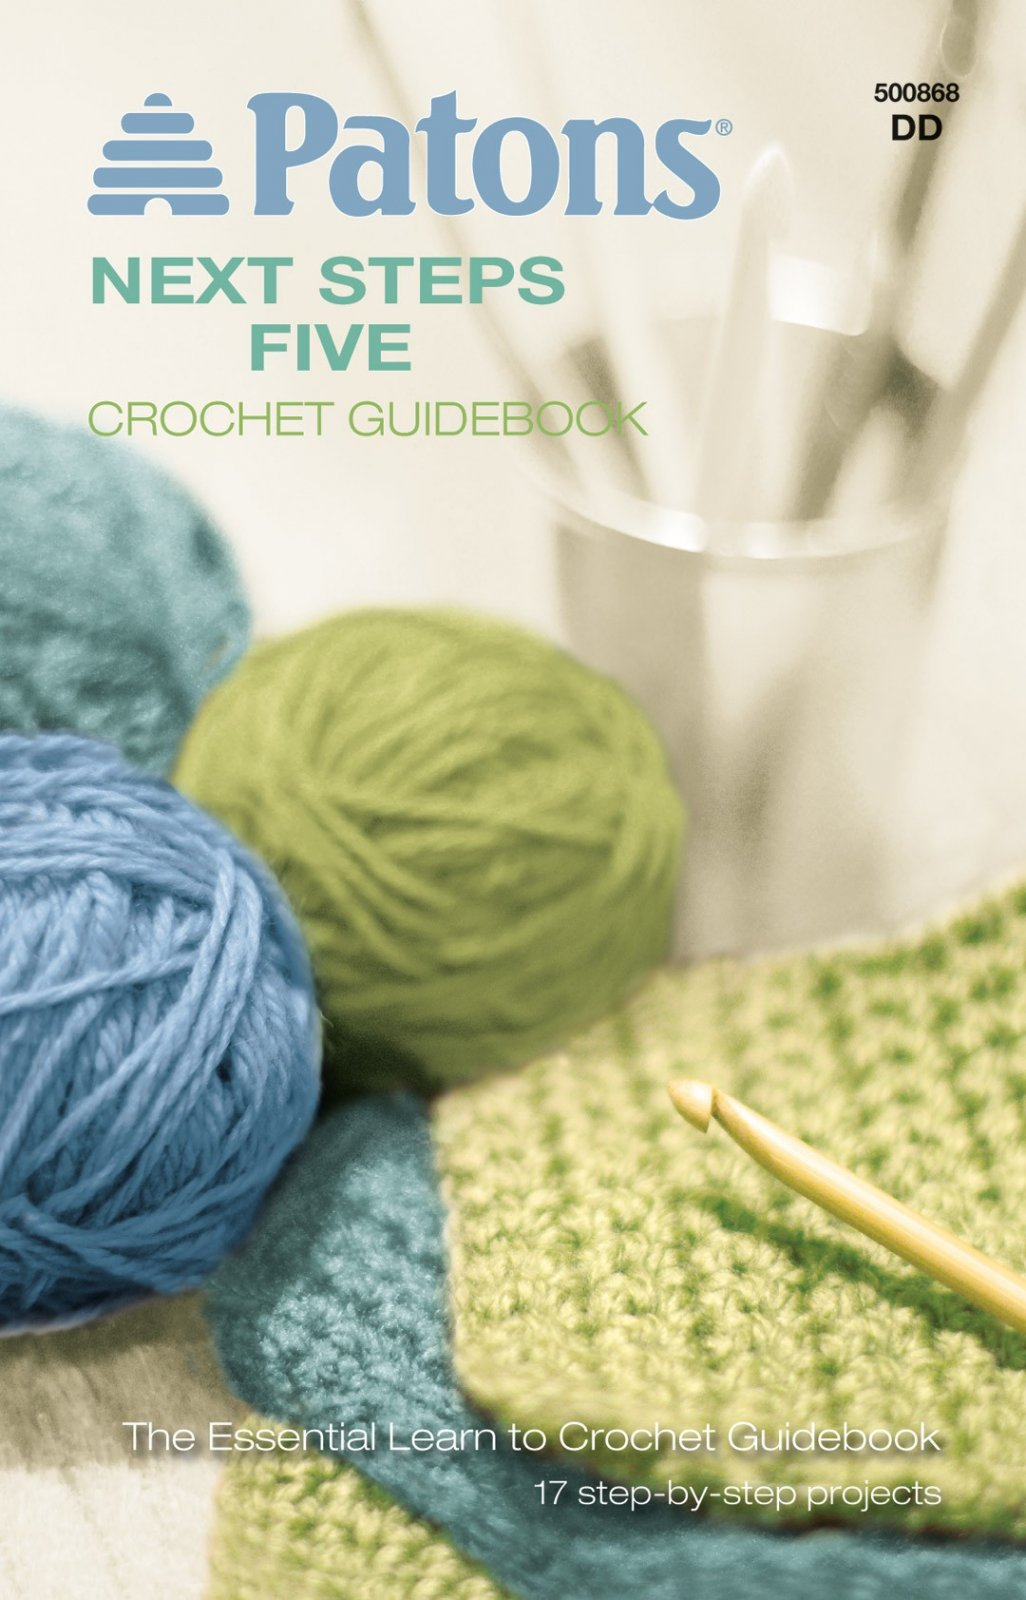 Crochet Guidebook - Patons Next Steps 5